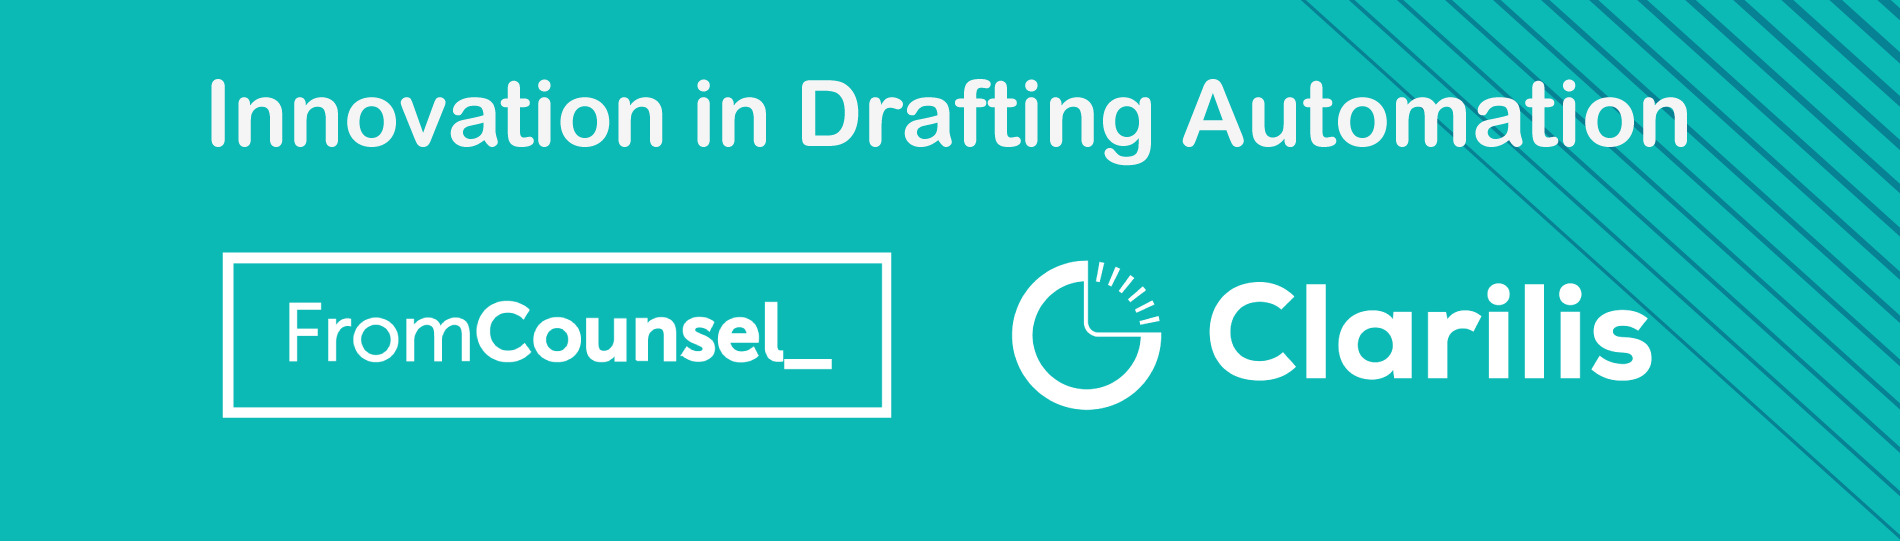 FromCounsel and Clarilis - Innovation in Drafting Automation